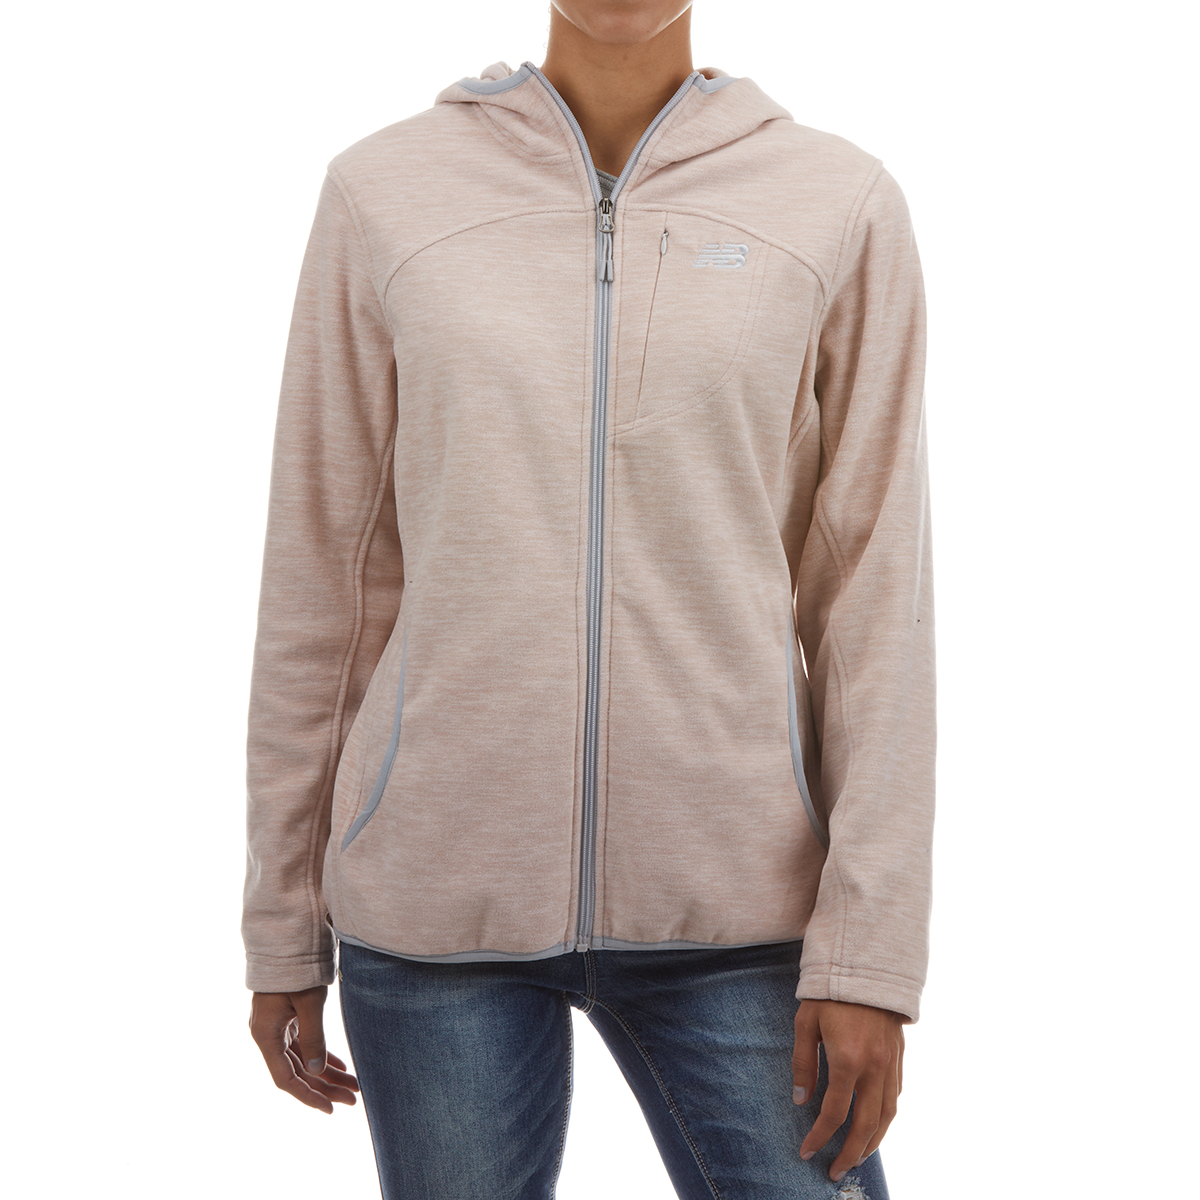 New Balance Women's Full Zip Polar Fleece Spacedye Hoodie - Red, S